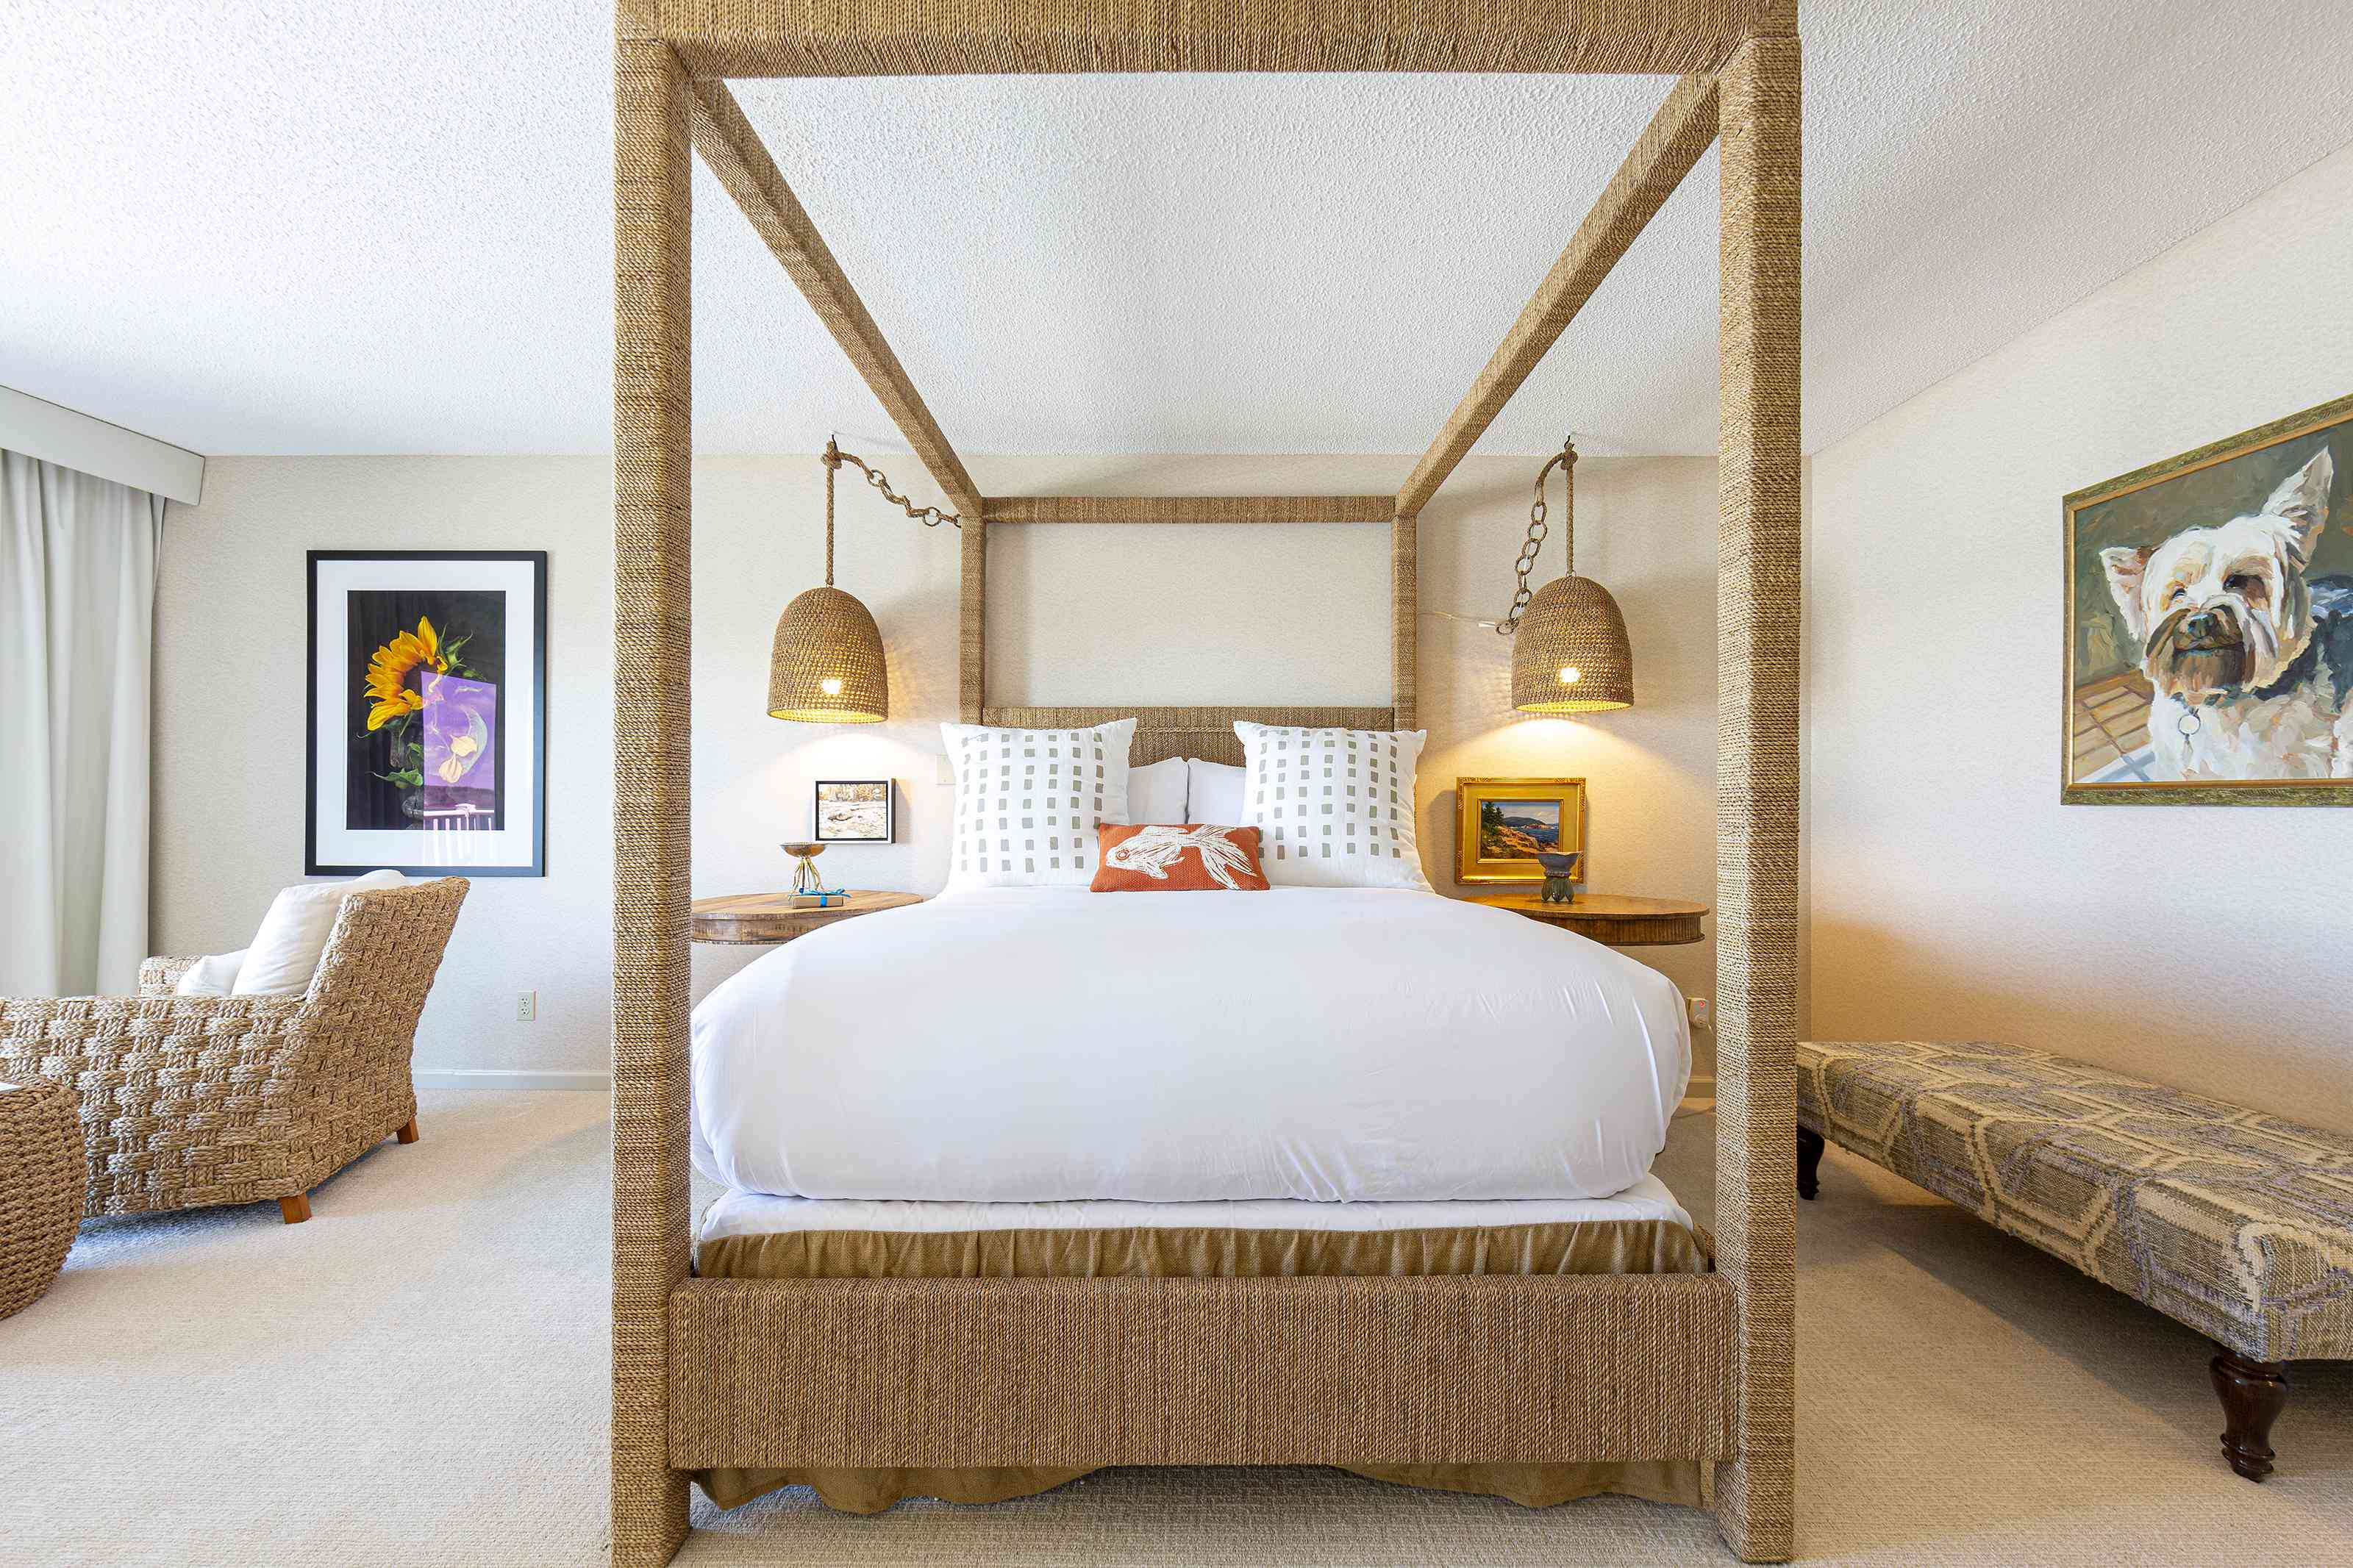 Bedroom with wicker four poster bed